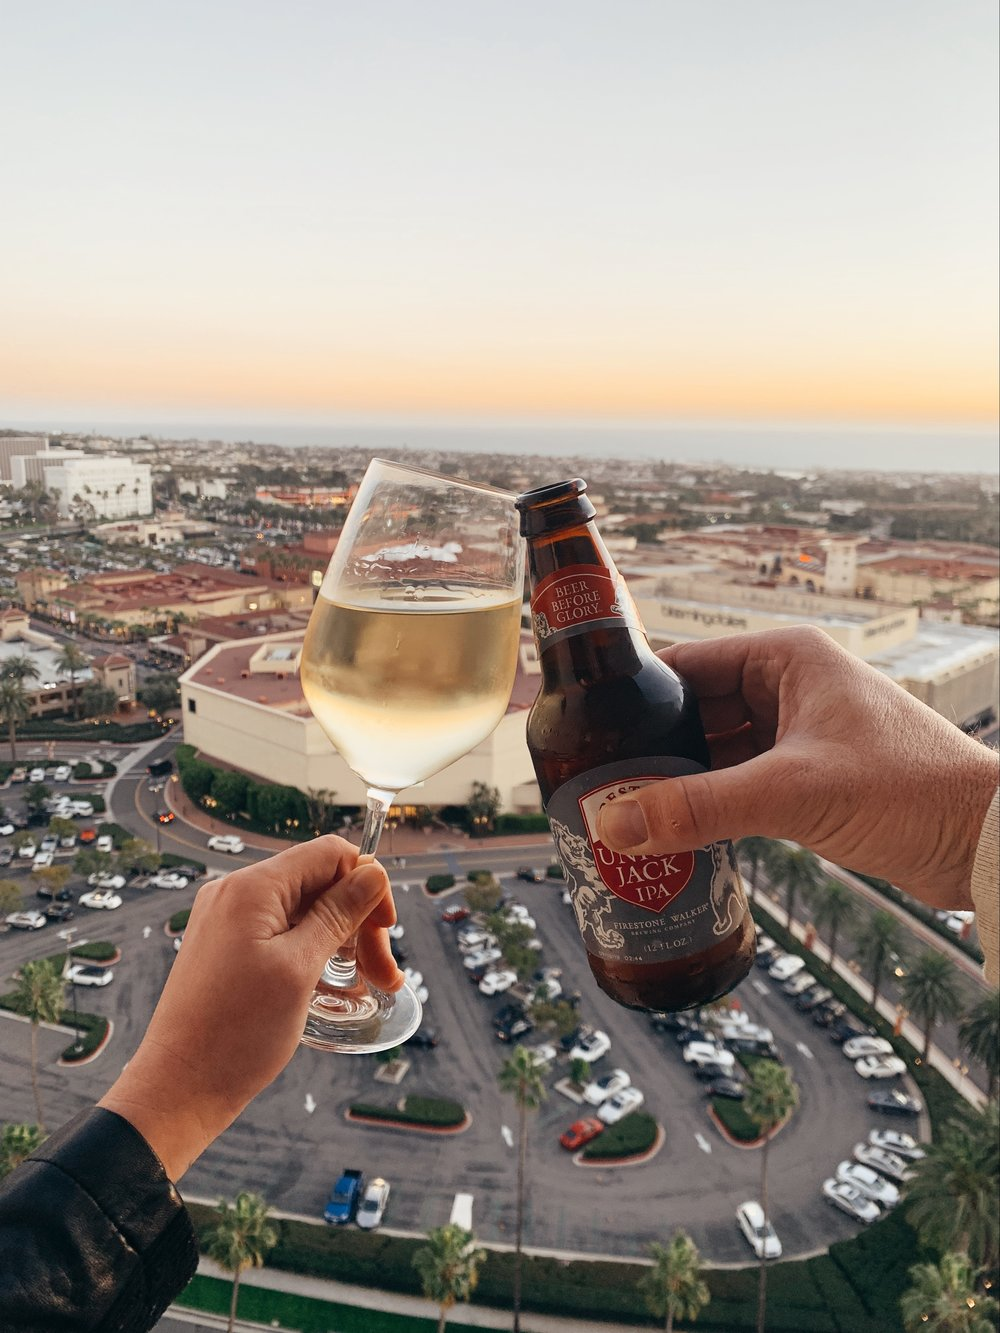 Cheers to sunsets from the Island Club Lounge!